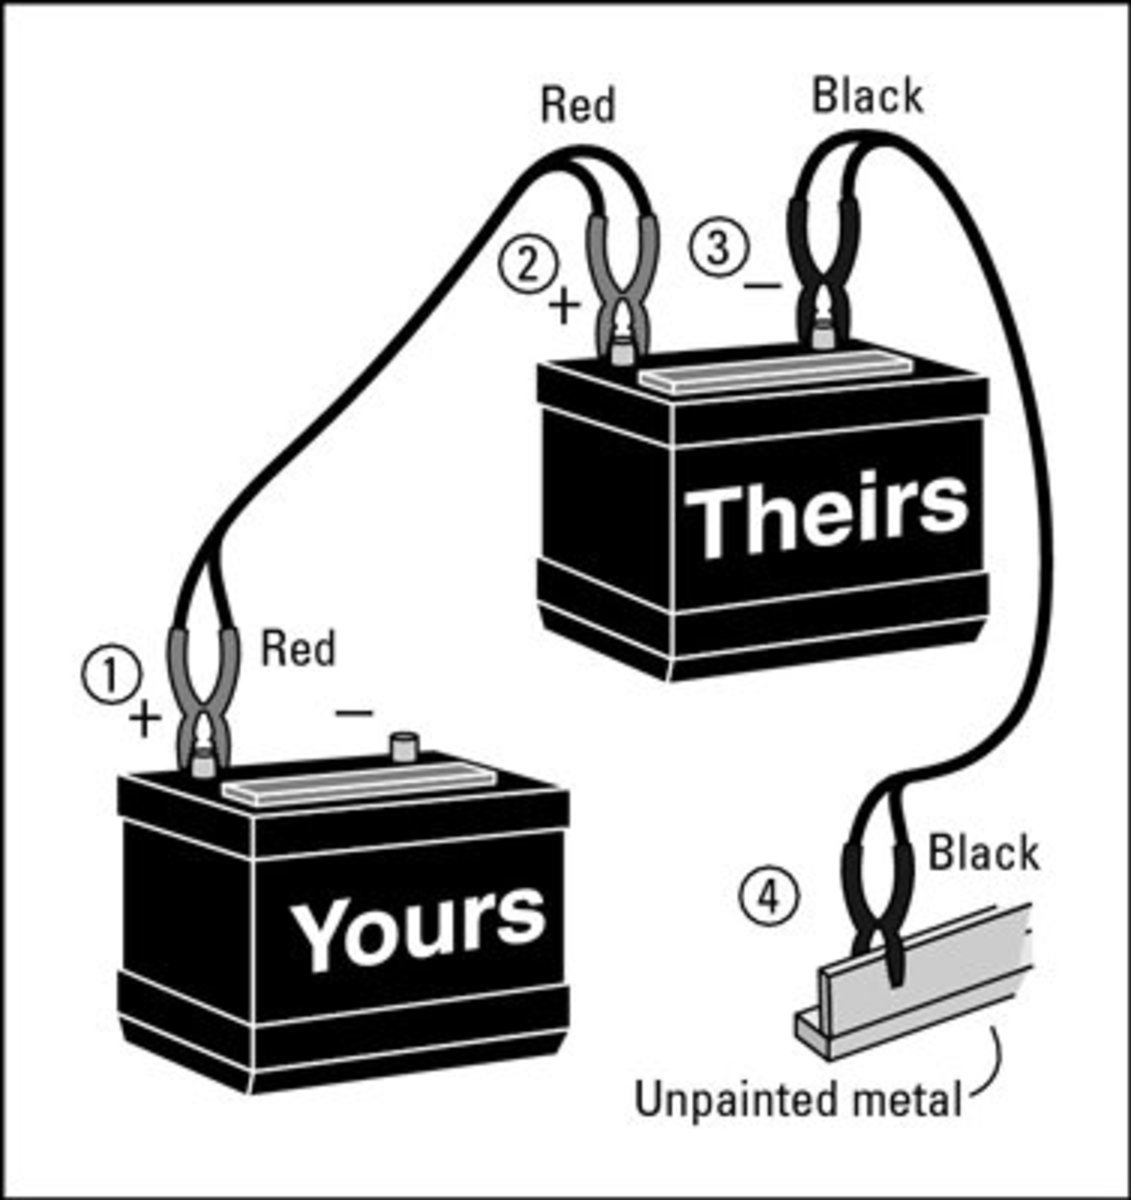 a Diagram showing how to properly hook up your jumper cables. Be sure not to connect them backwards! Red goes to (+), Black to (-) or another ground.